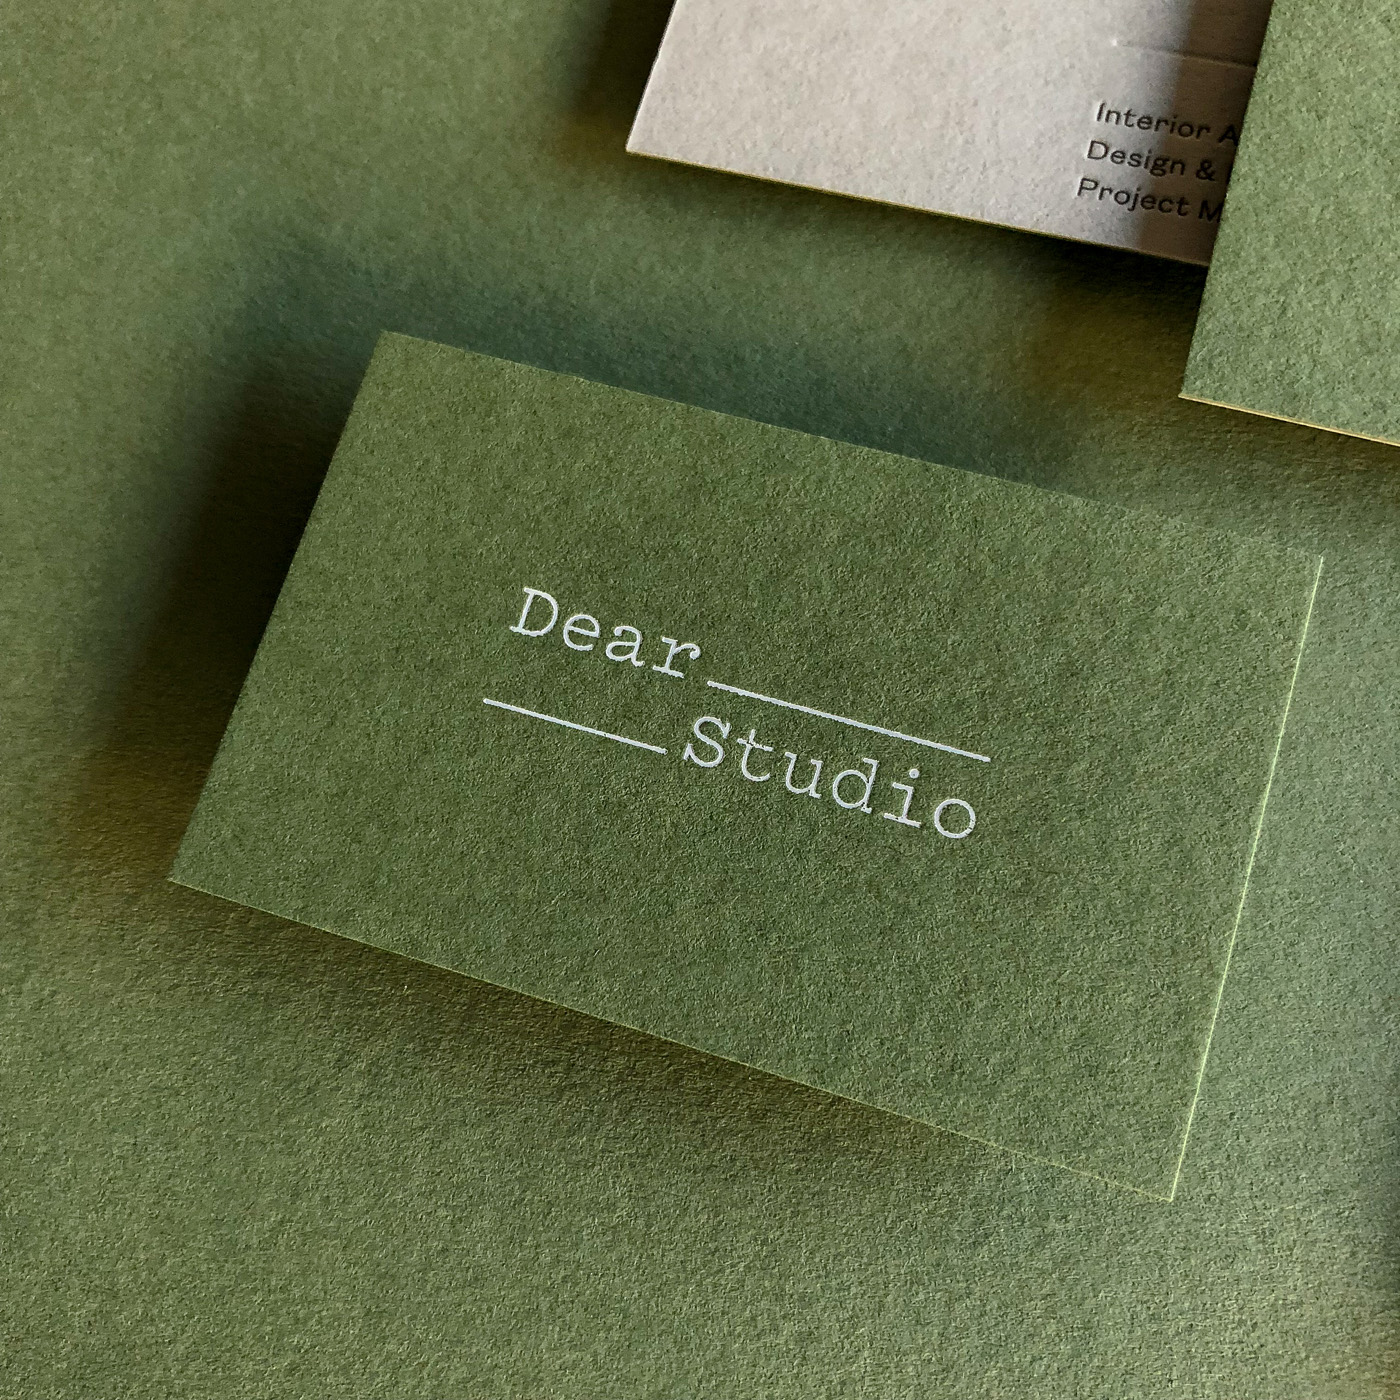 Duplex letterpress blind white foil business cards for Dear Studio on  Colorplan Mid Green and Real Grey 4